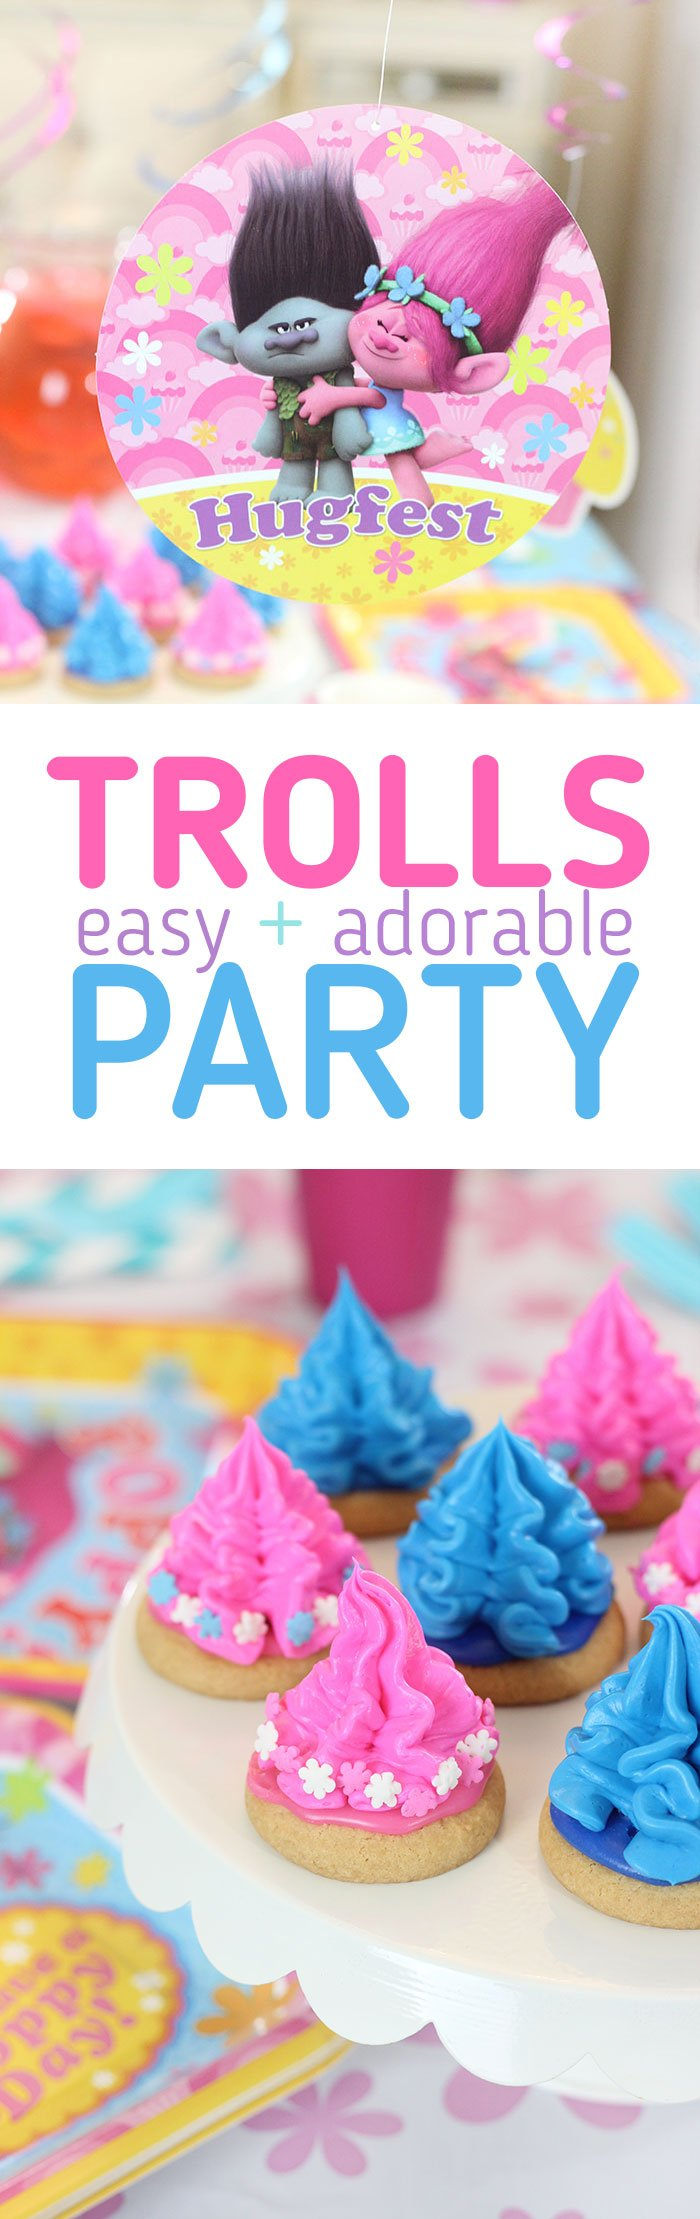 Trolls Party Ideas & Supplies. Throw the most adorable party with little effort with this tips with American Greetings Trolls party supplies available at Target.